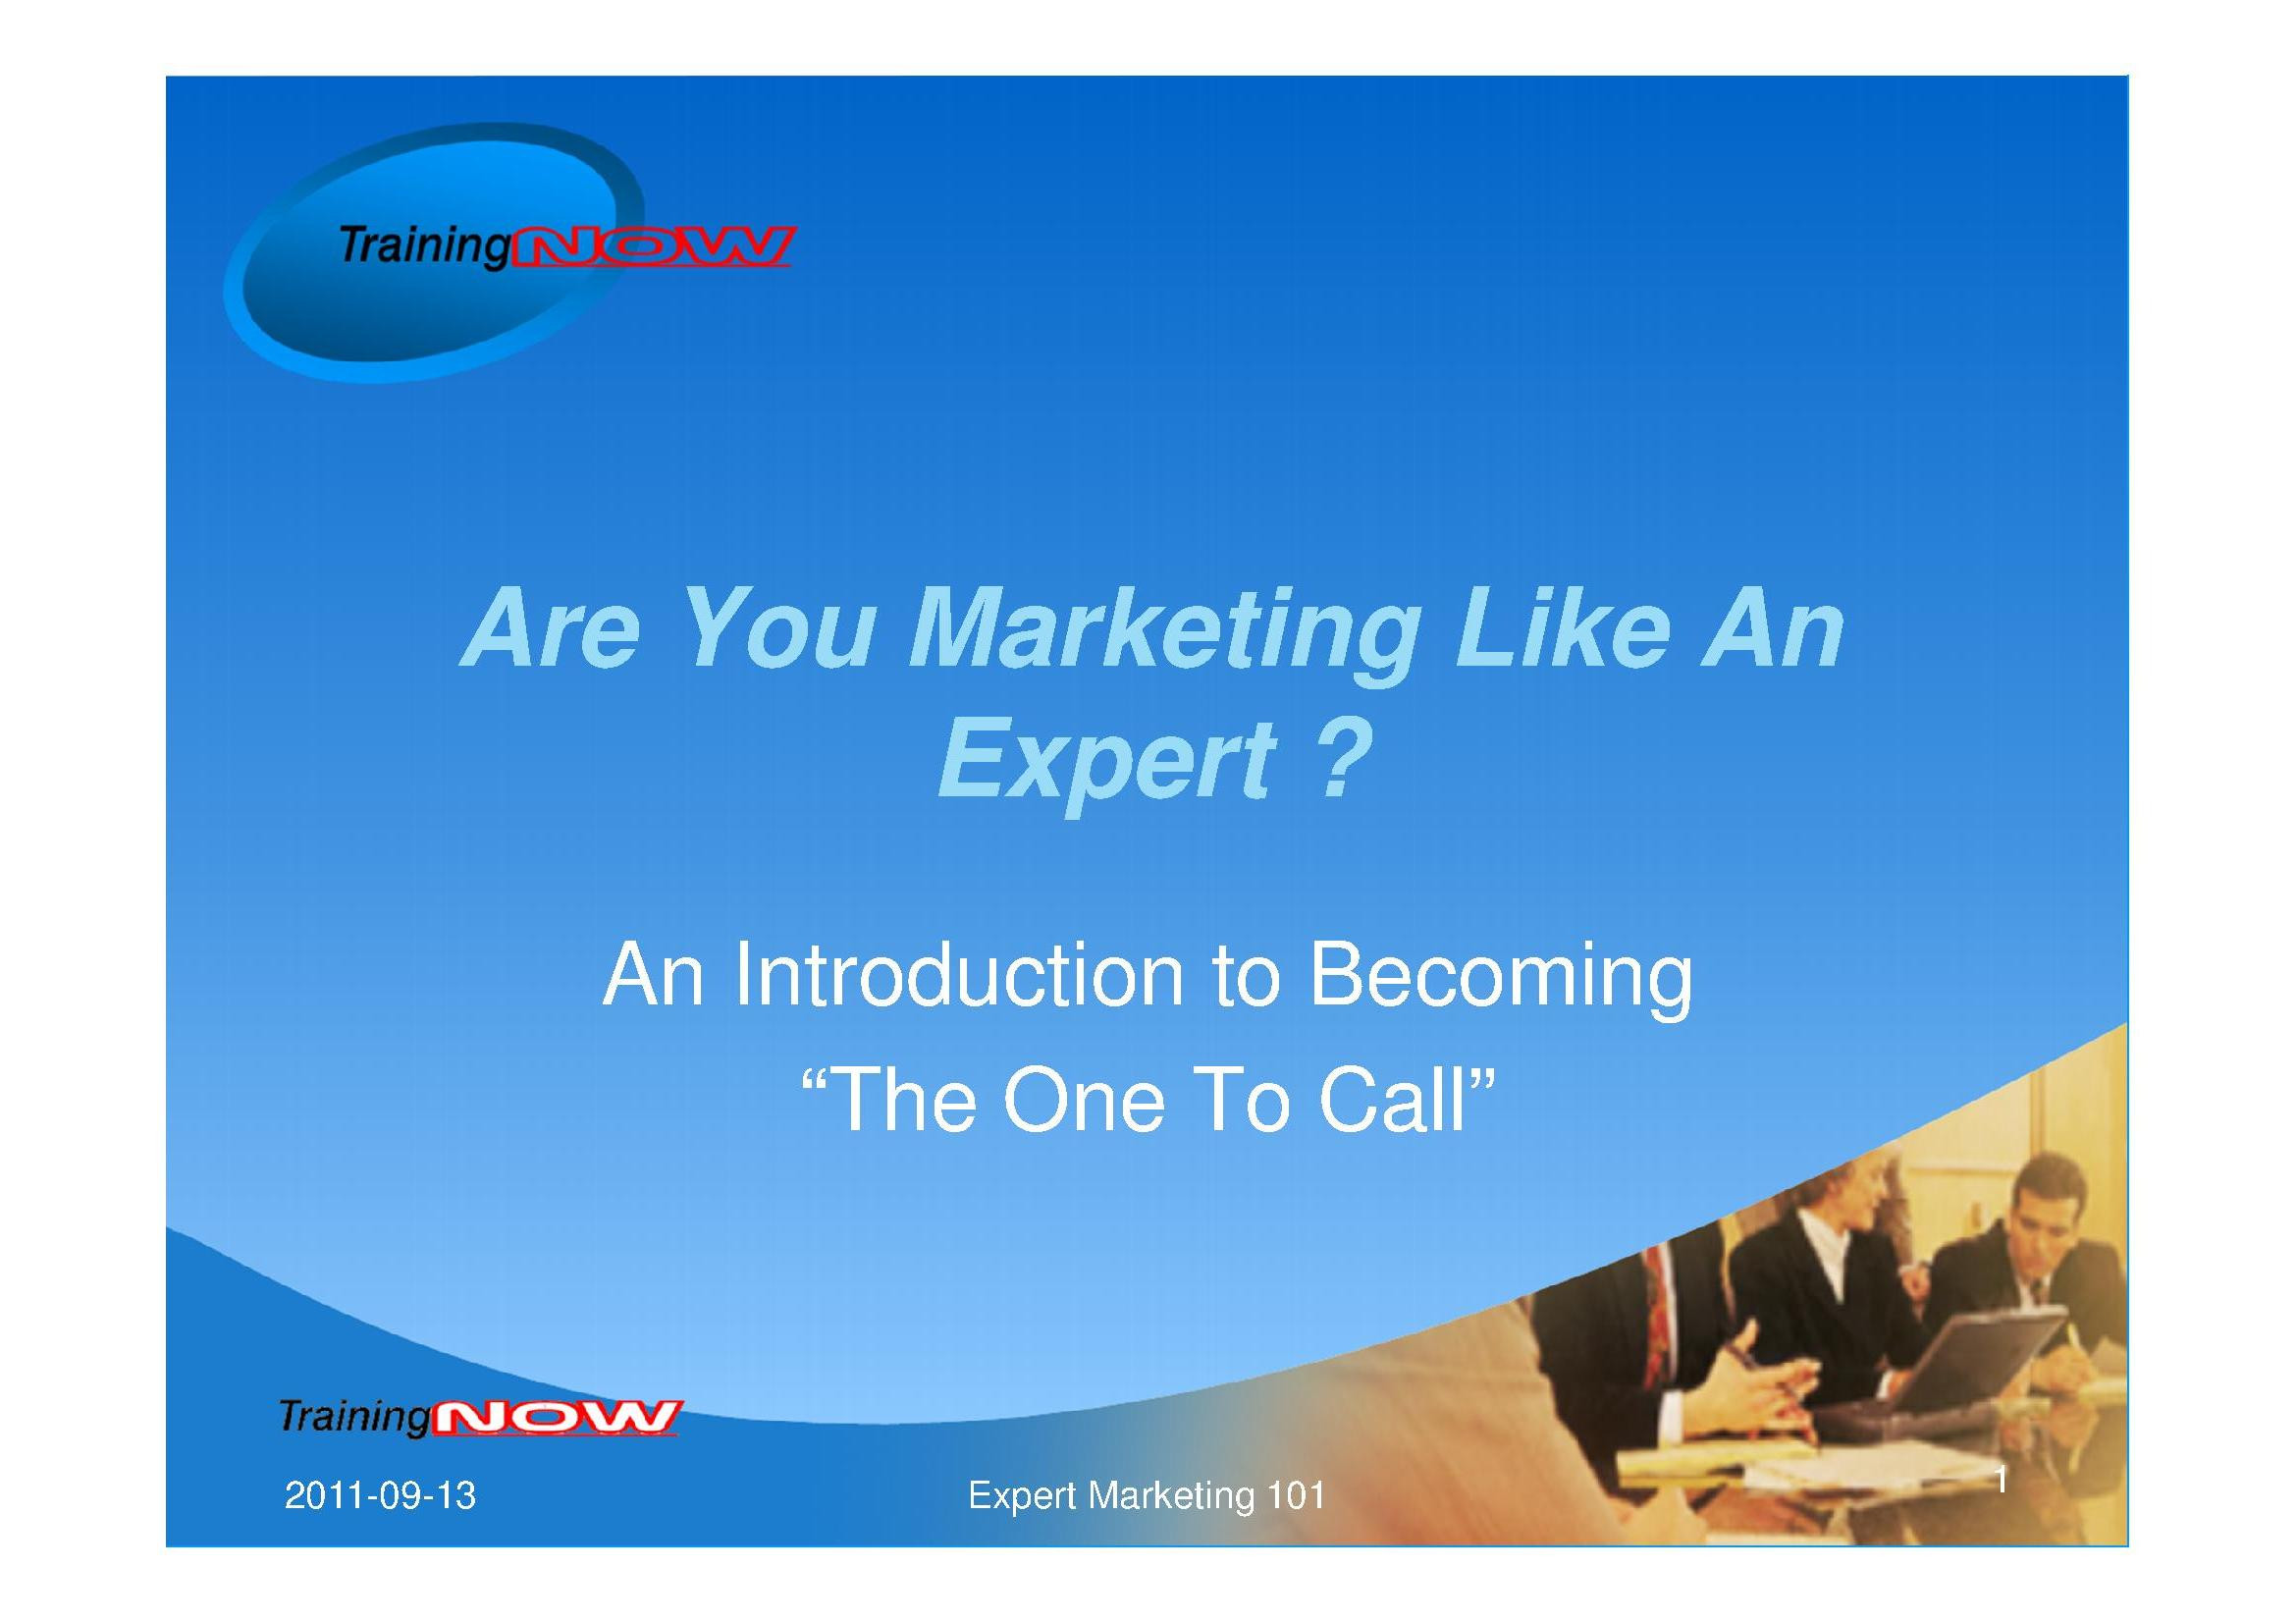 Expert Marketing 101: Becoming the One to Call